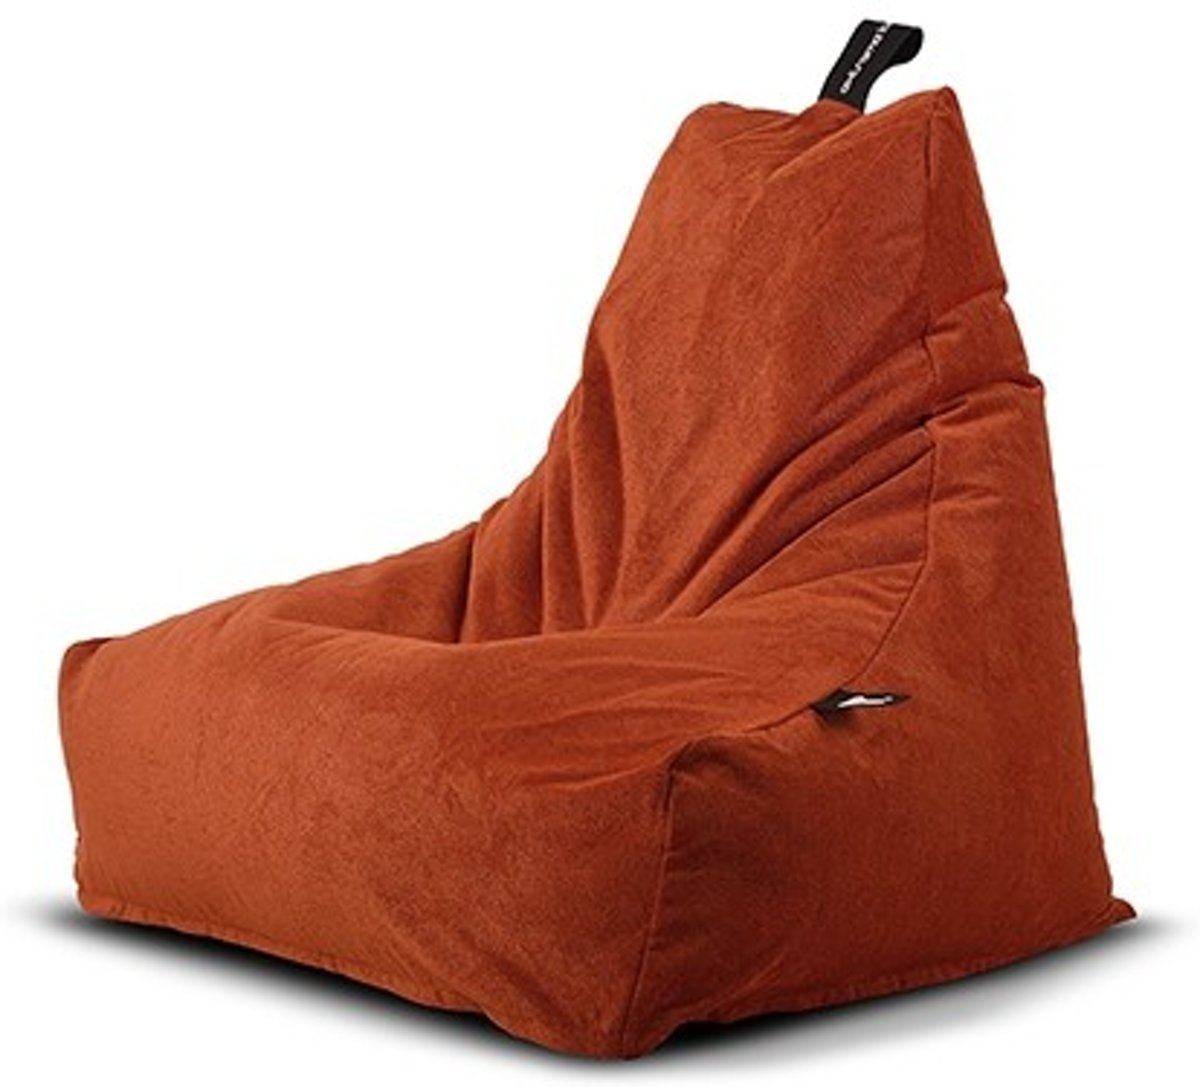 Extreme Lounging Zitzak B-bag Skin Orange kopen